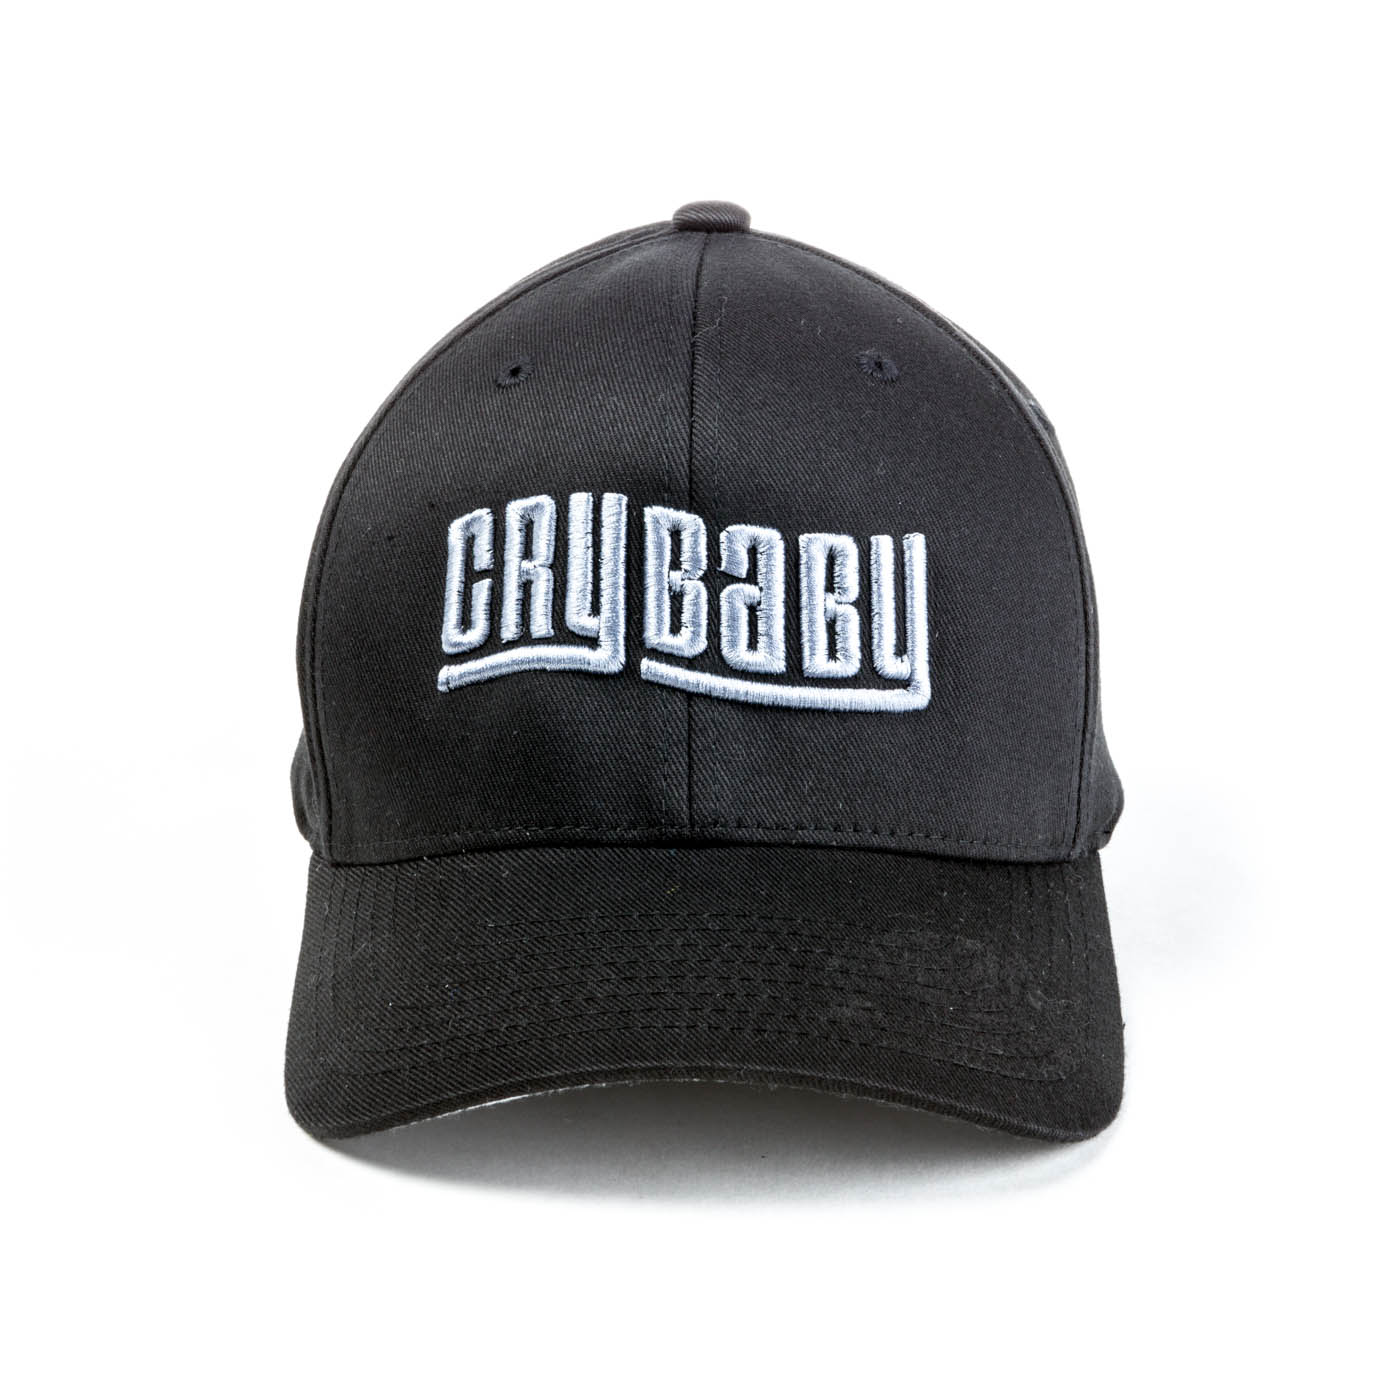 Crybaby DSD20-40SM Flex-Fit Black Cap